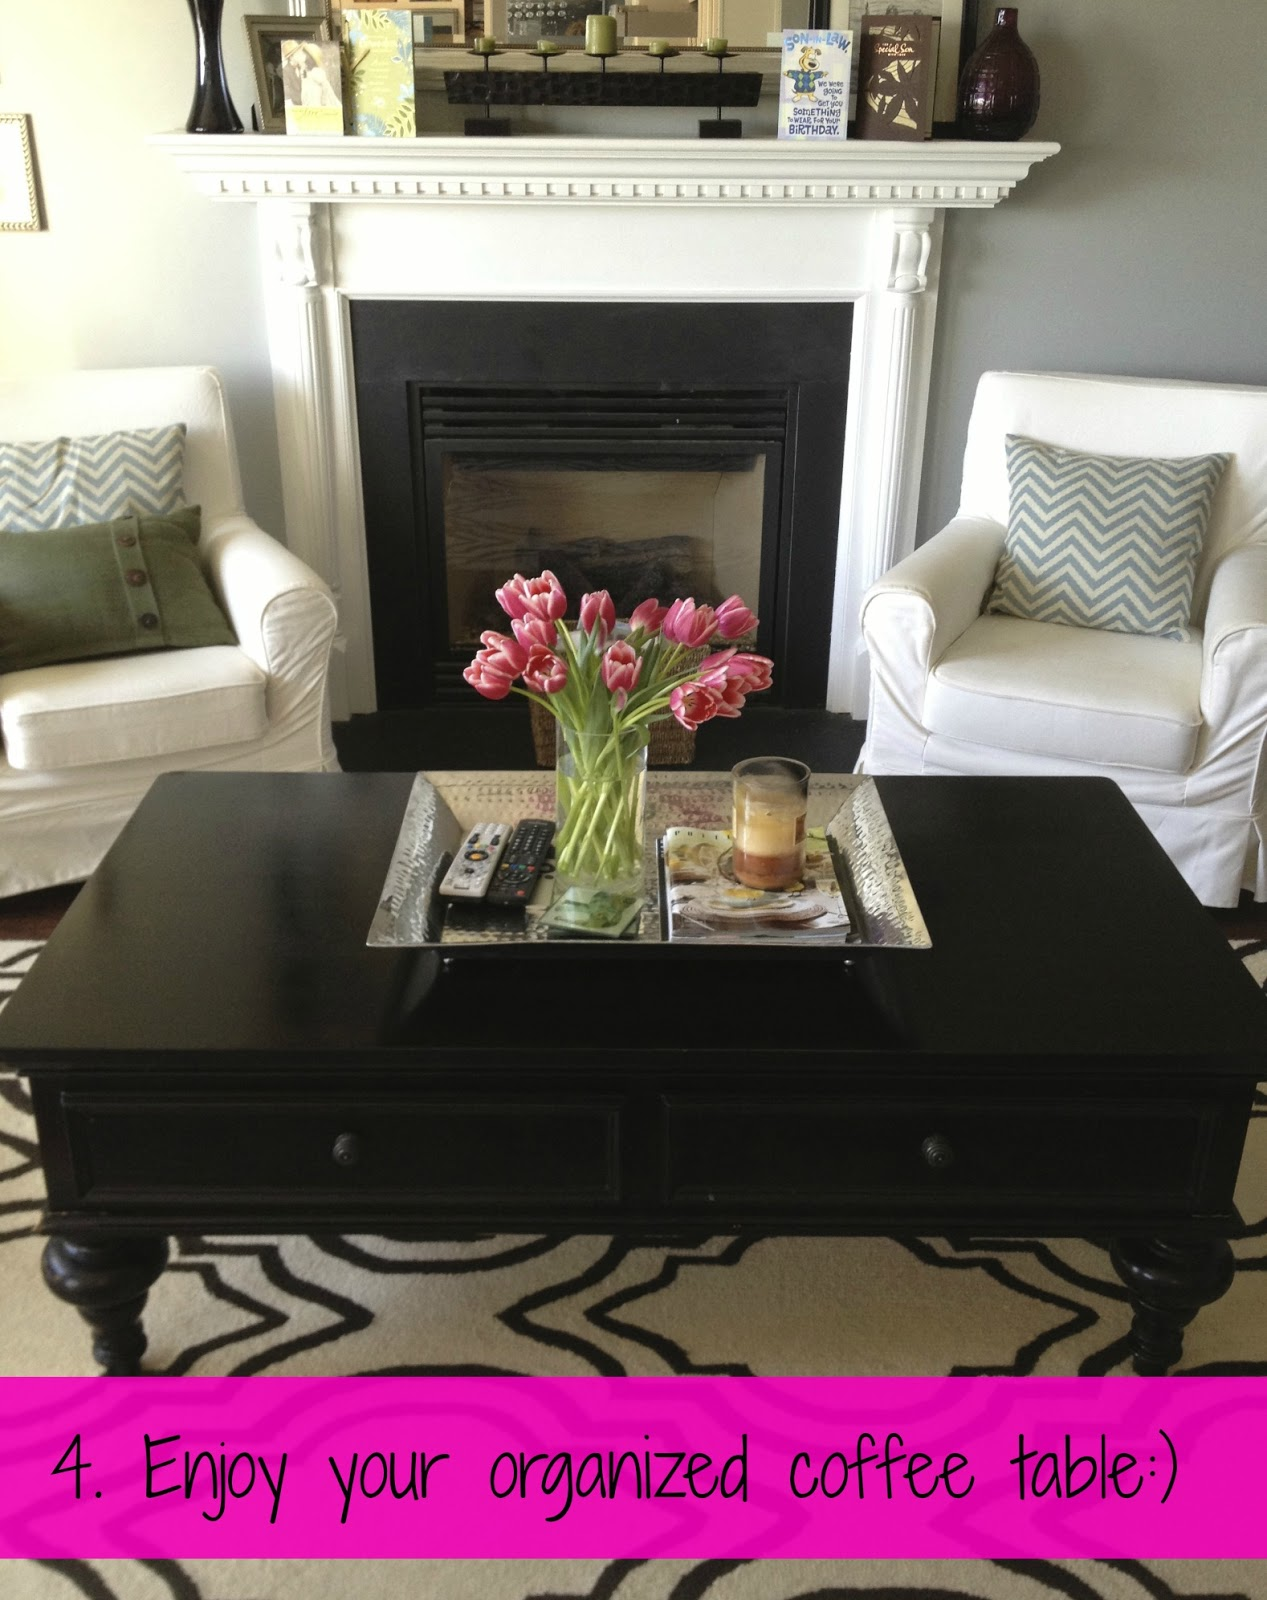 Coffee Table Decor & Organization Live Nest Love